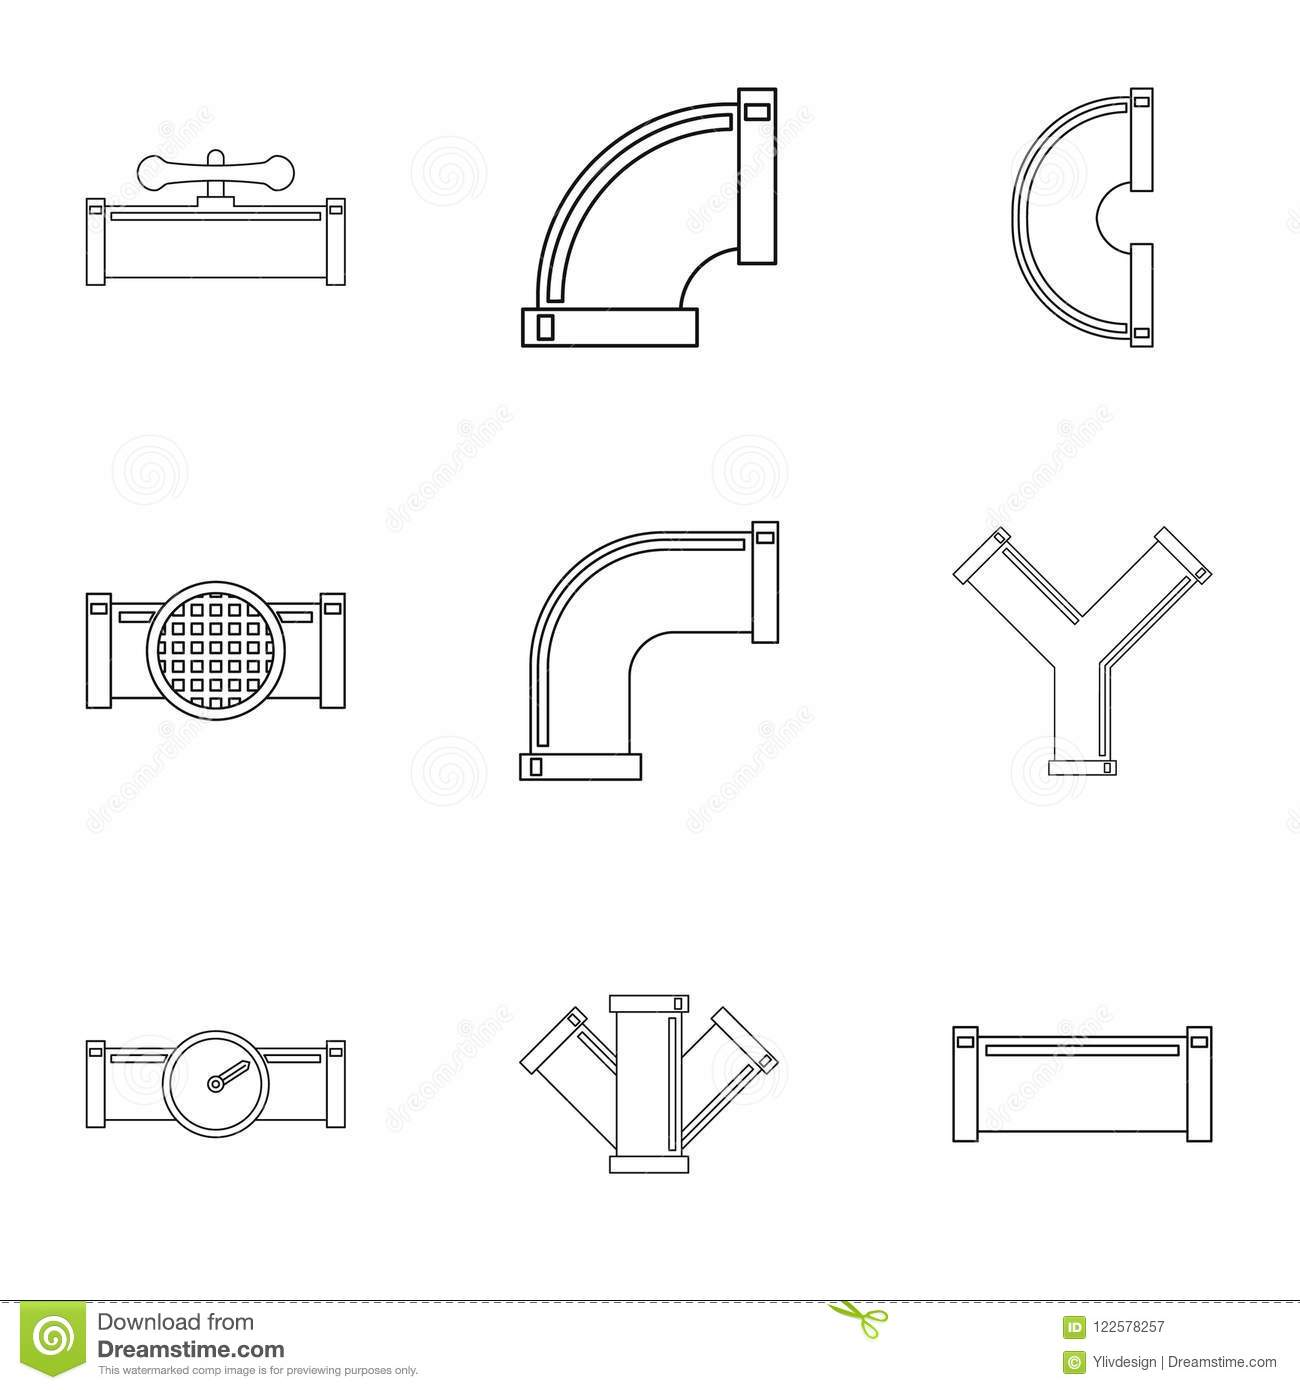 hight resolution of sewer pipes stock illustrations 417 sewer pipes stock illustrations vectors clipart dreamstime